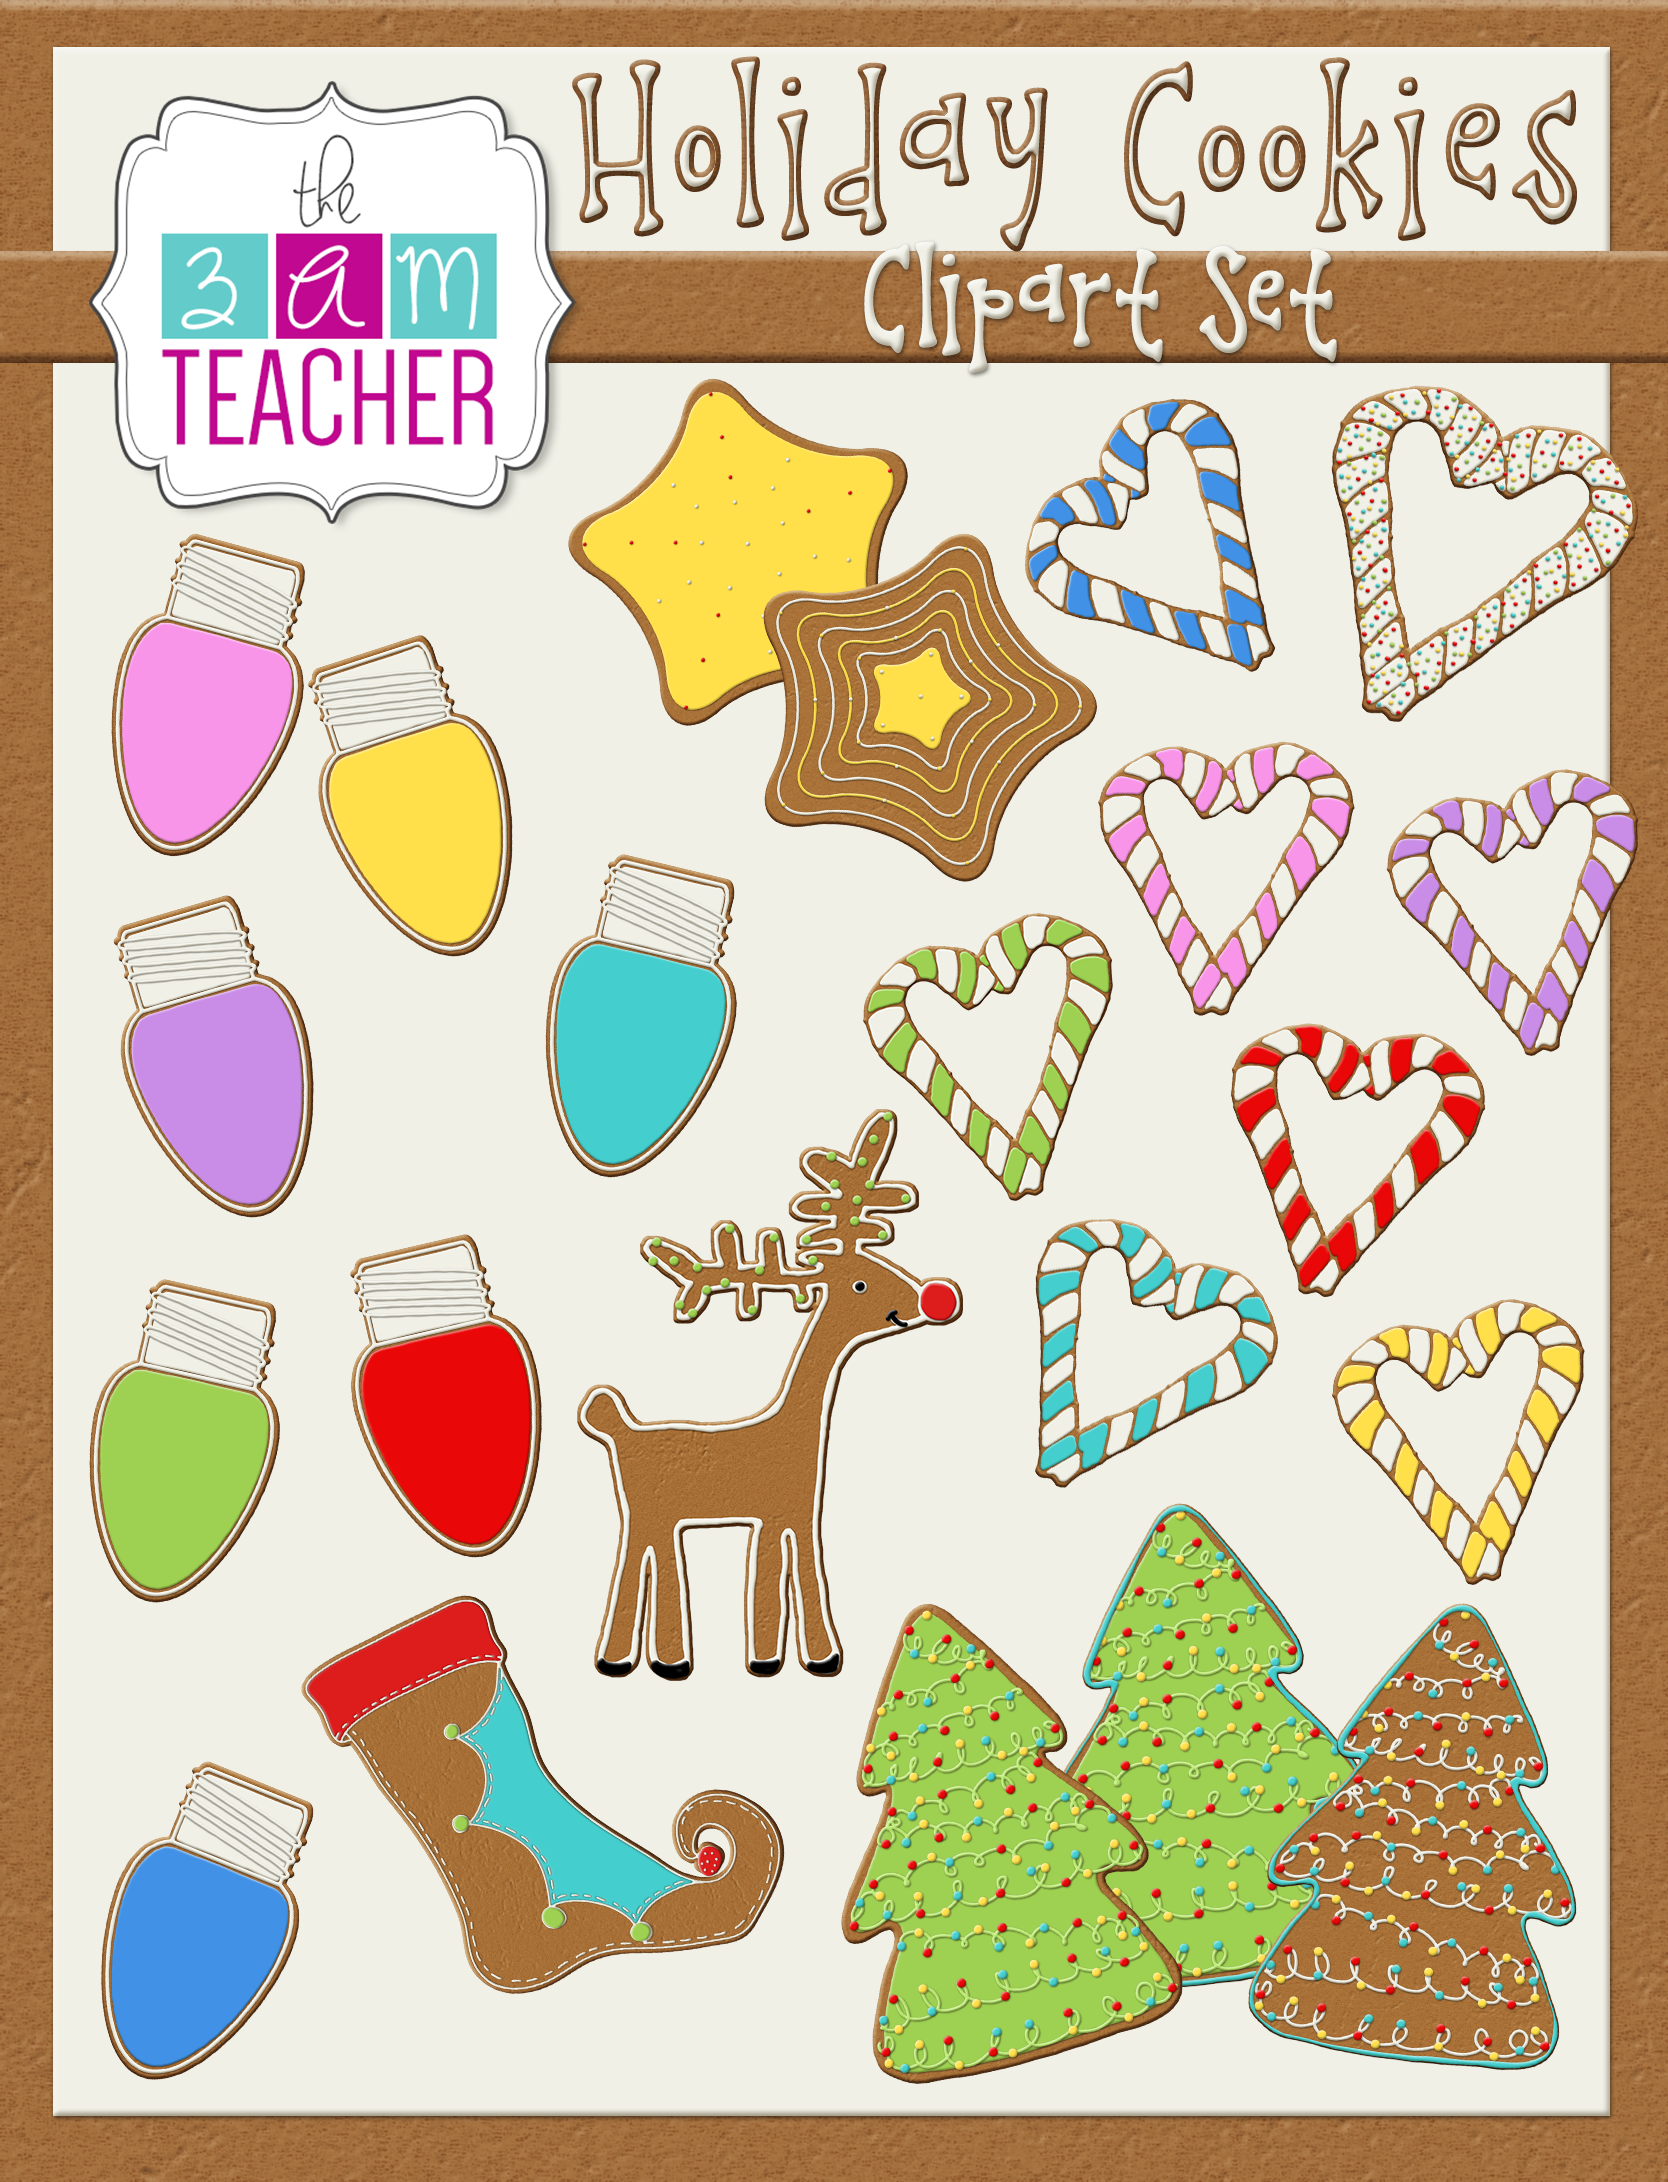 medium resolution of colorful gingerbread holiday cookie clipart images by the 3am teacher 5 00